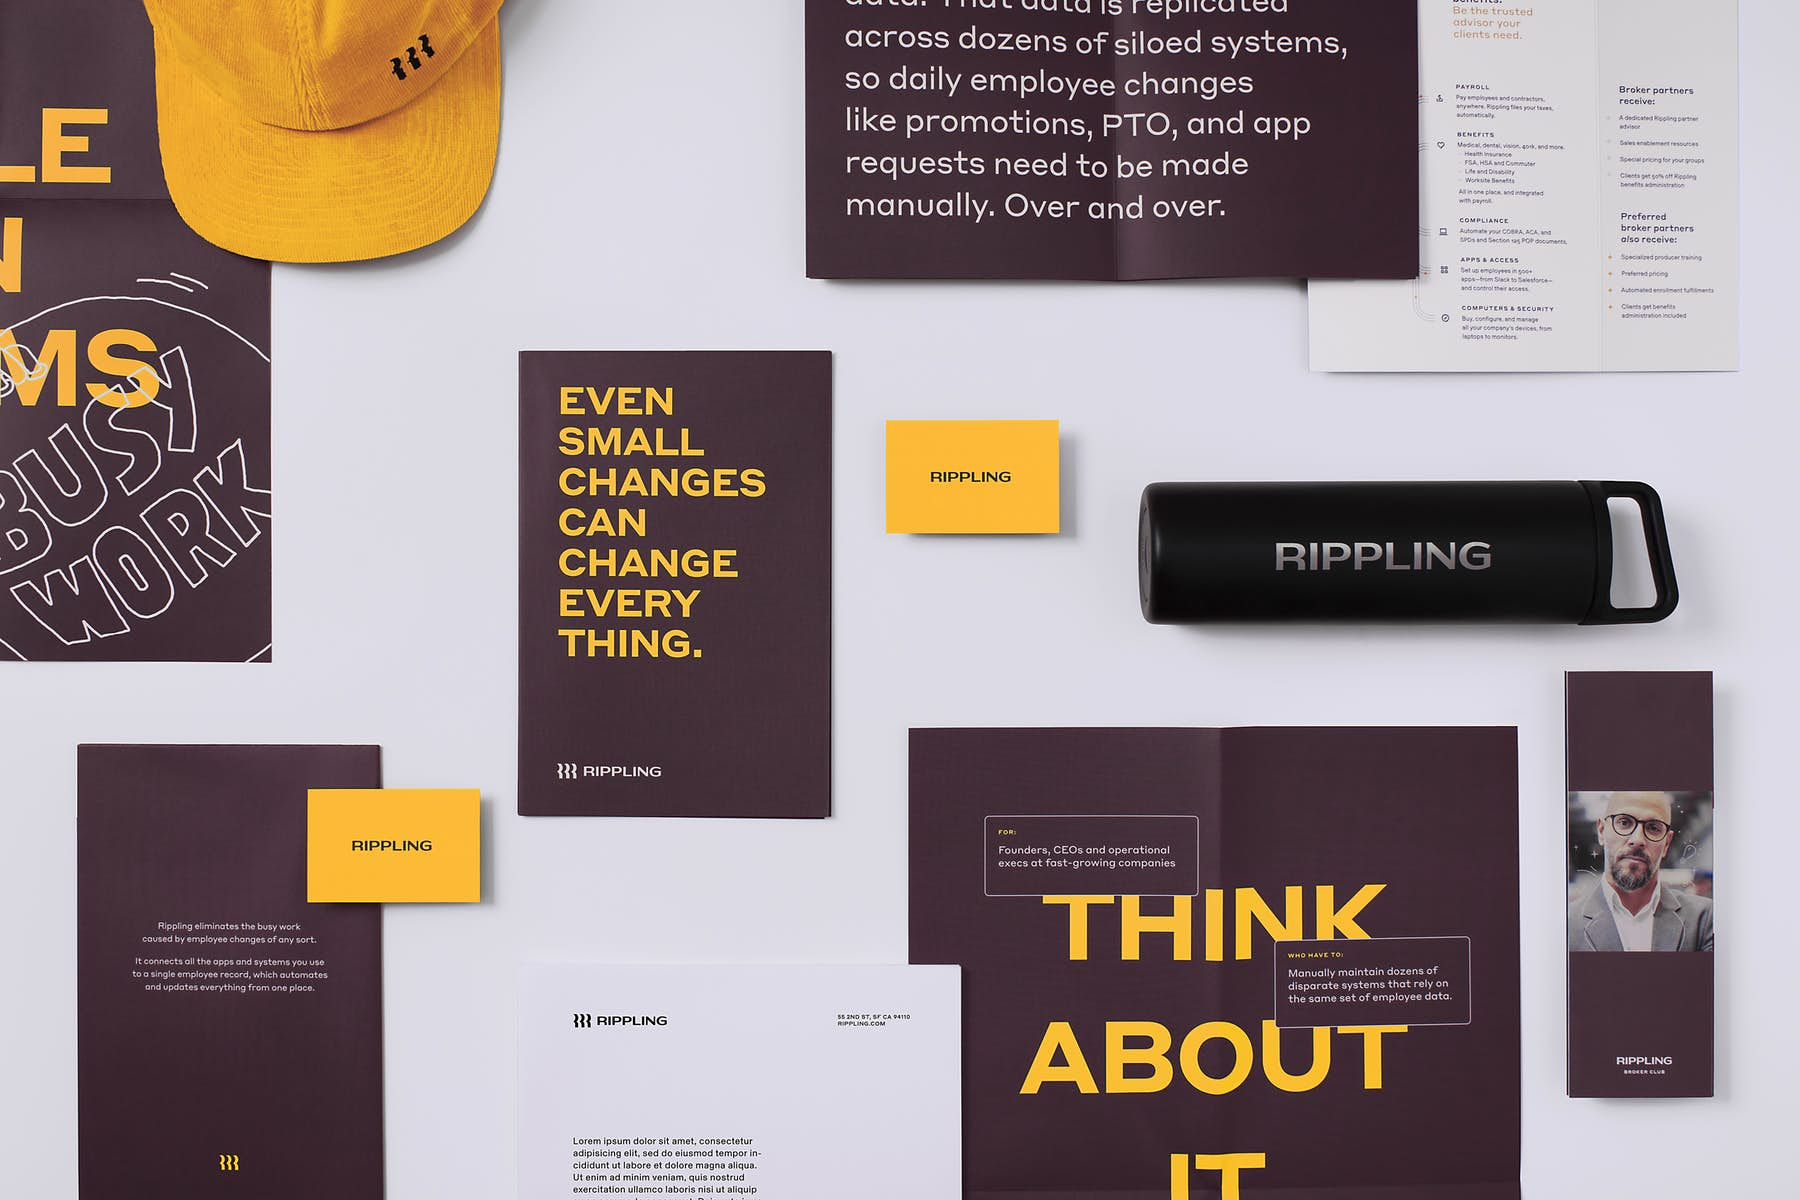 Rippling re-branding collection